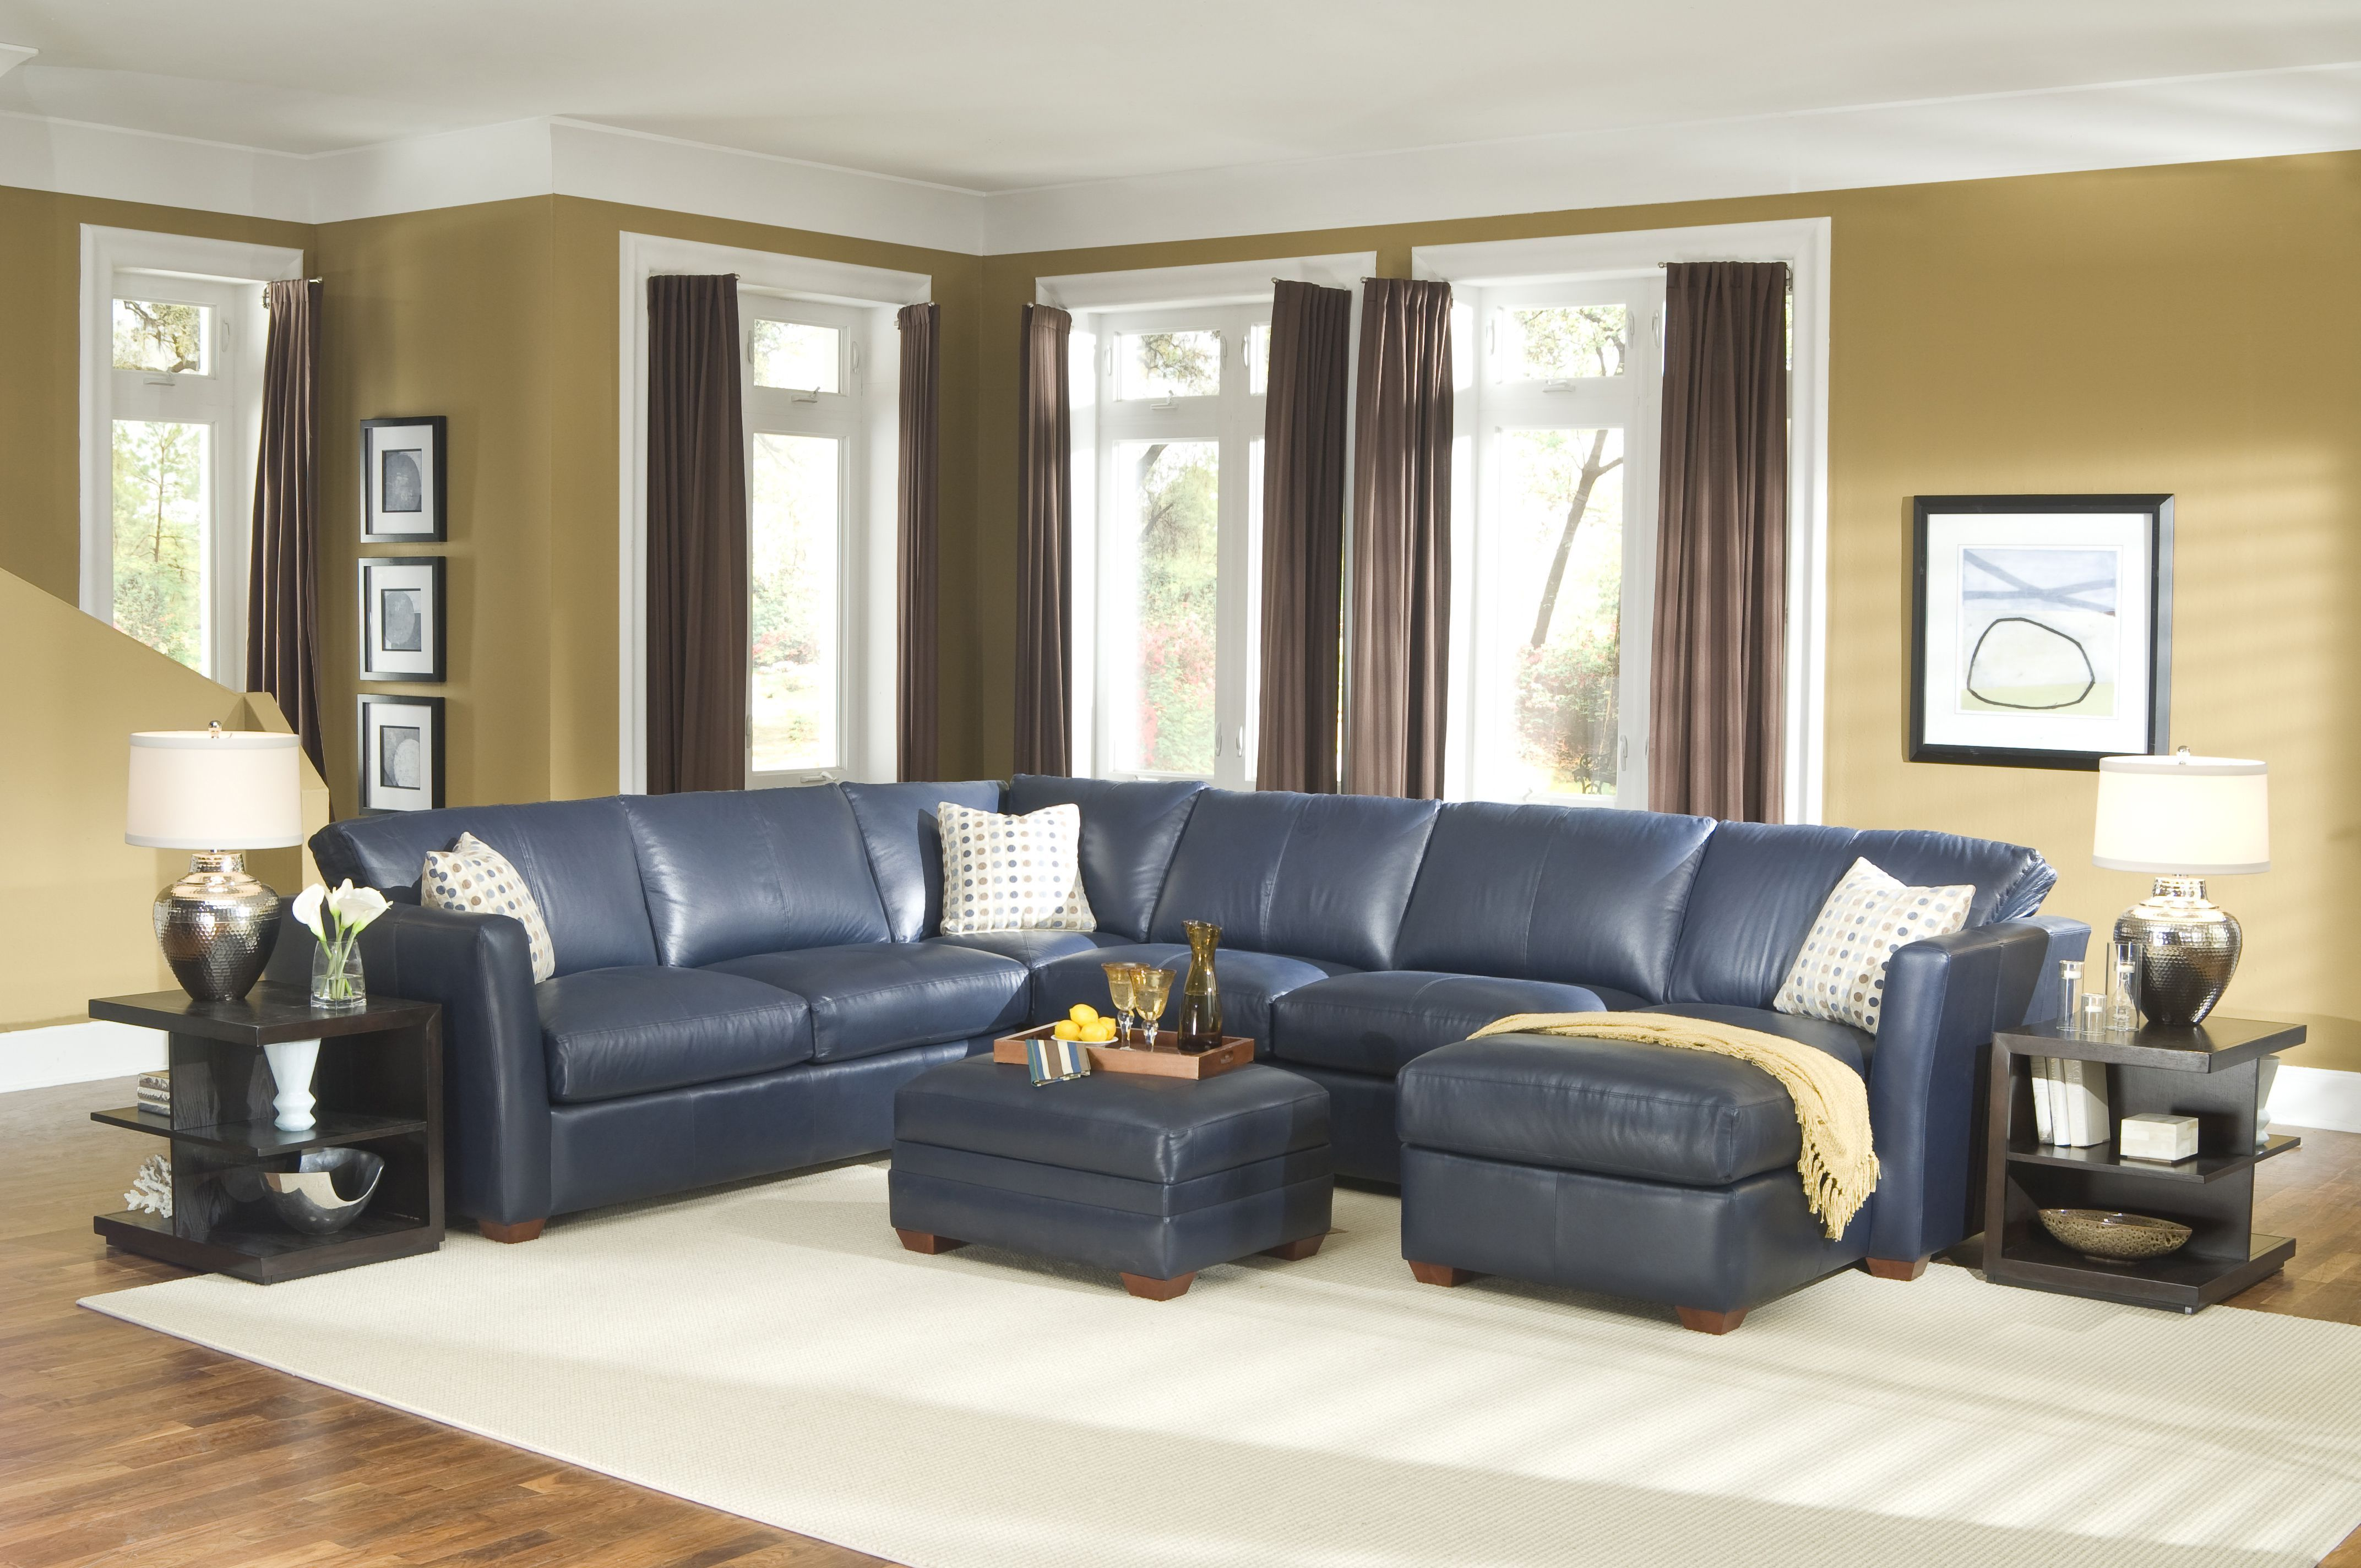 Navy Blue Leather Sofa In 2020 Leather Couches Living Room Blue Leather Couch Living Room Leather